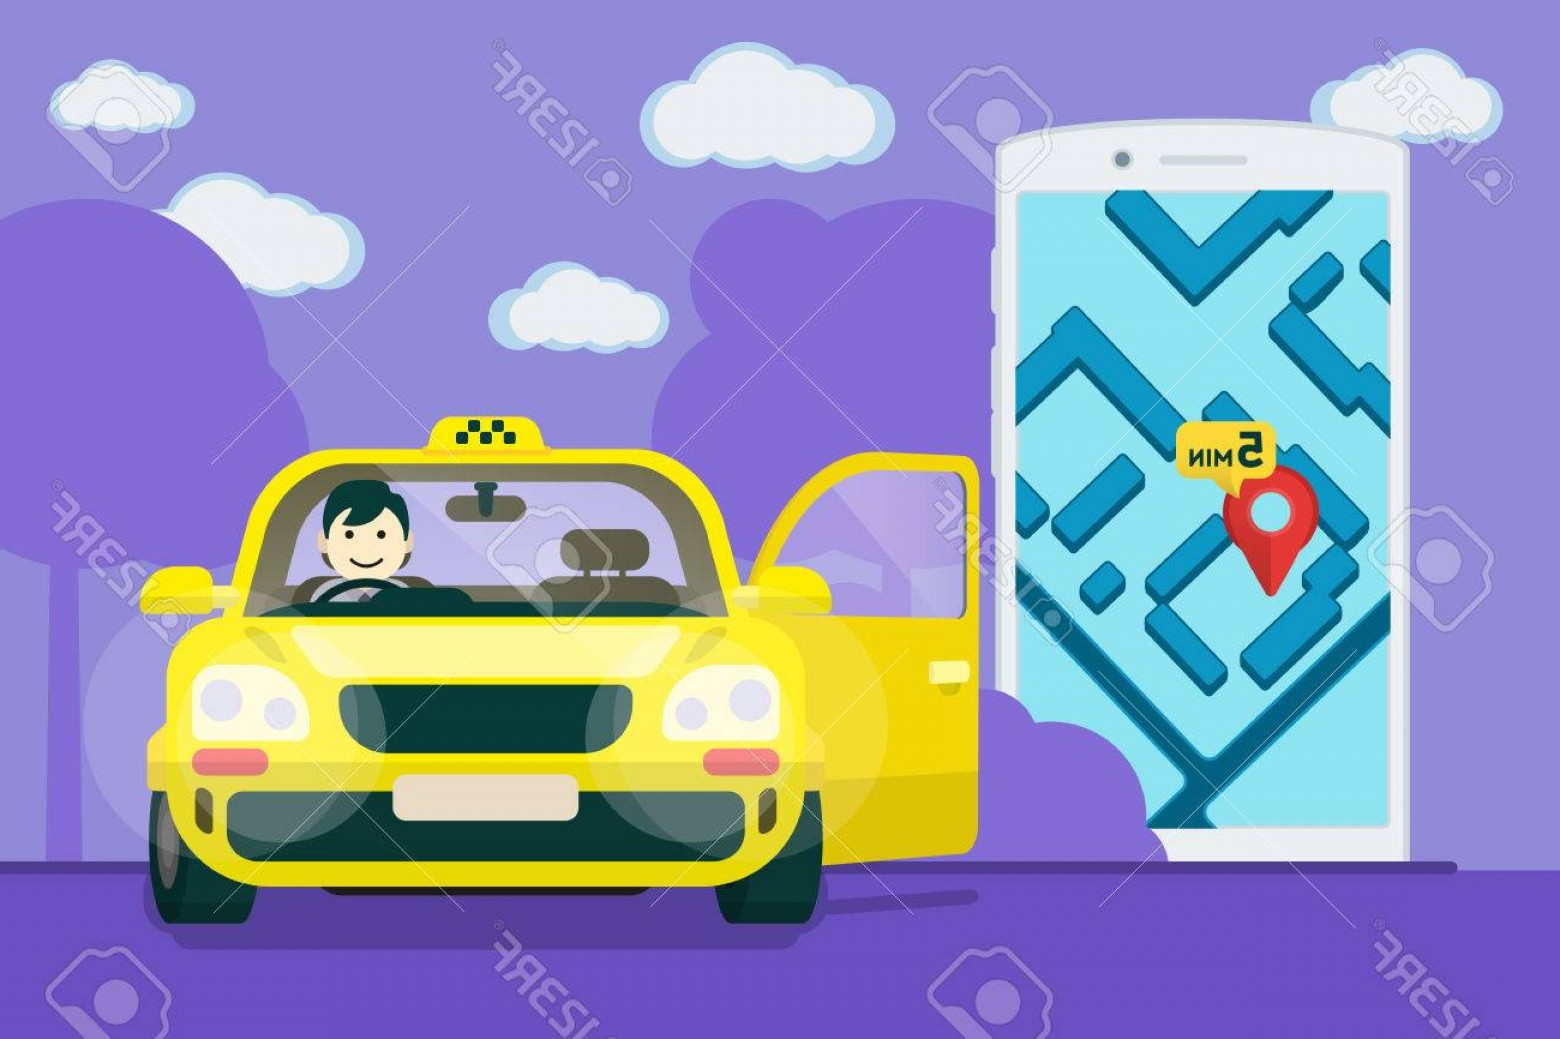 Vector Taxi Cab Driver: Photostock Vector Taxi Service Flat Yellow Taxi With A Driver The Car With The Door Open Car Front View Flat Mobile Ph